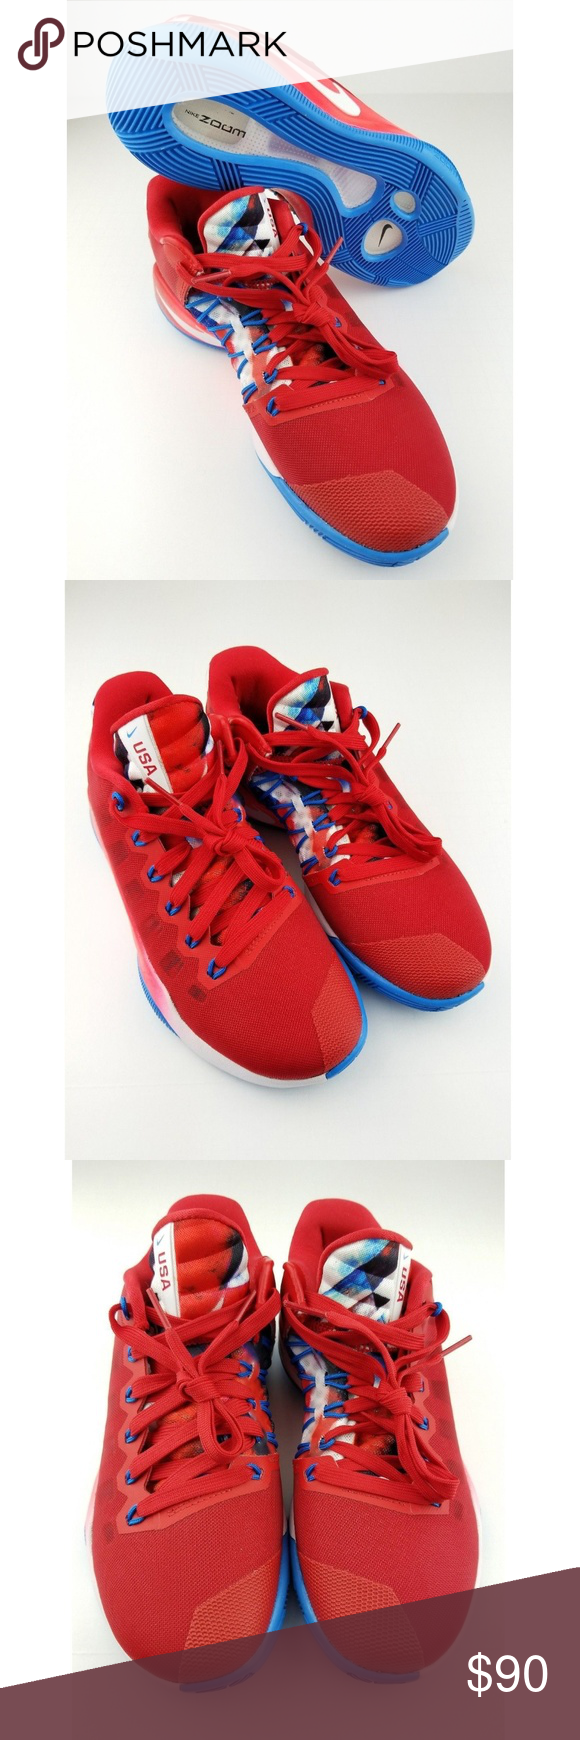 new product fe2b7 6b36b Nike Hyperdunk 2016 Low Olympics USA Red SIZE 7 Nike Hyperdunk 2016 Low  Olympics USA Red - 876499-699 - Women s - 7 SIZE 7 A4-2 Condition New  without box ...